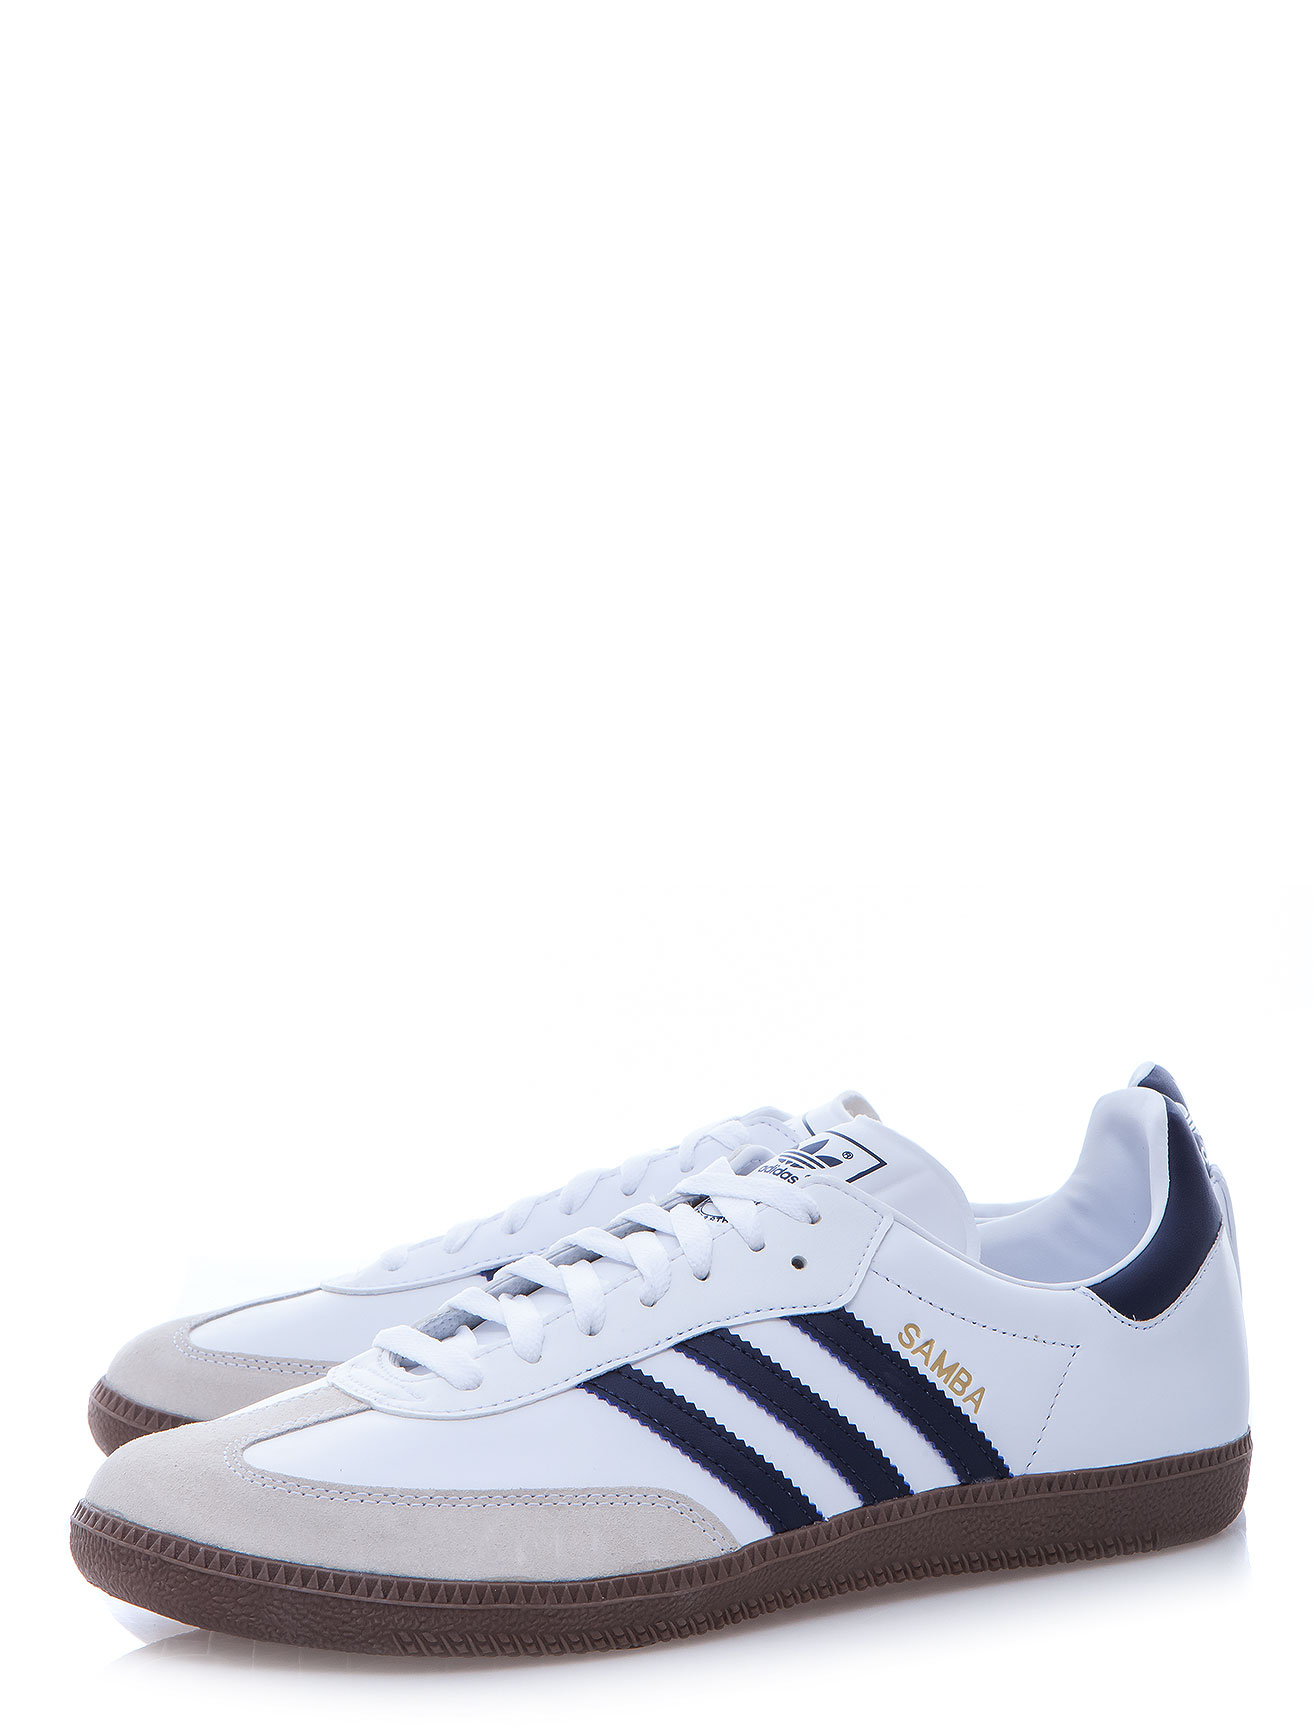 adidas navy striped samba sneaker in white for men lyst. Black Bedroom Furniture Sets. Home Design Ideas